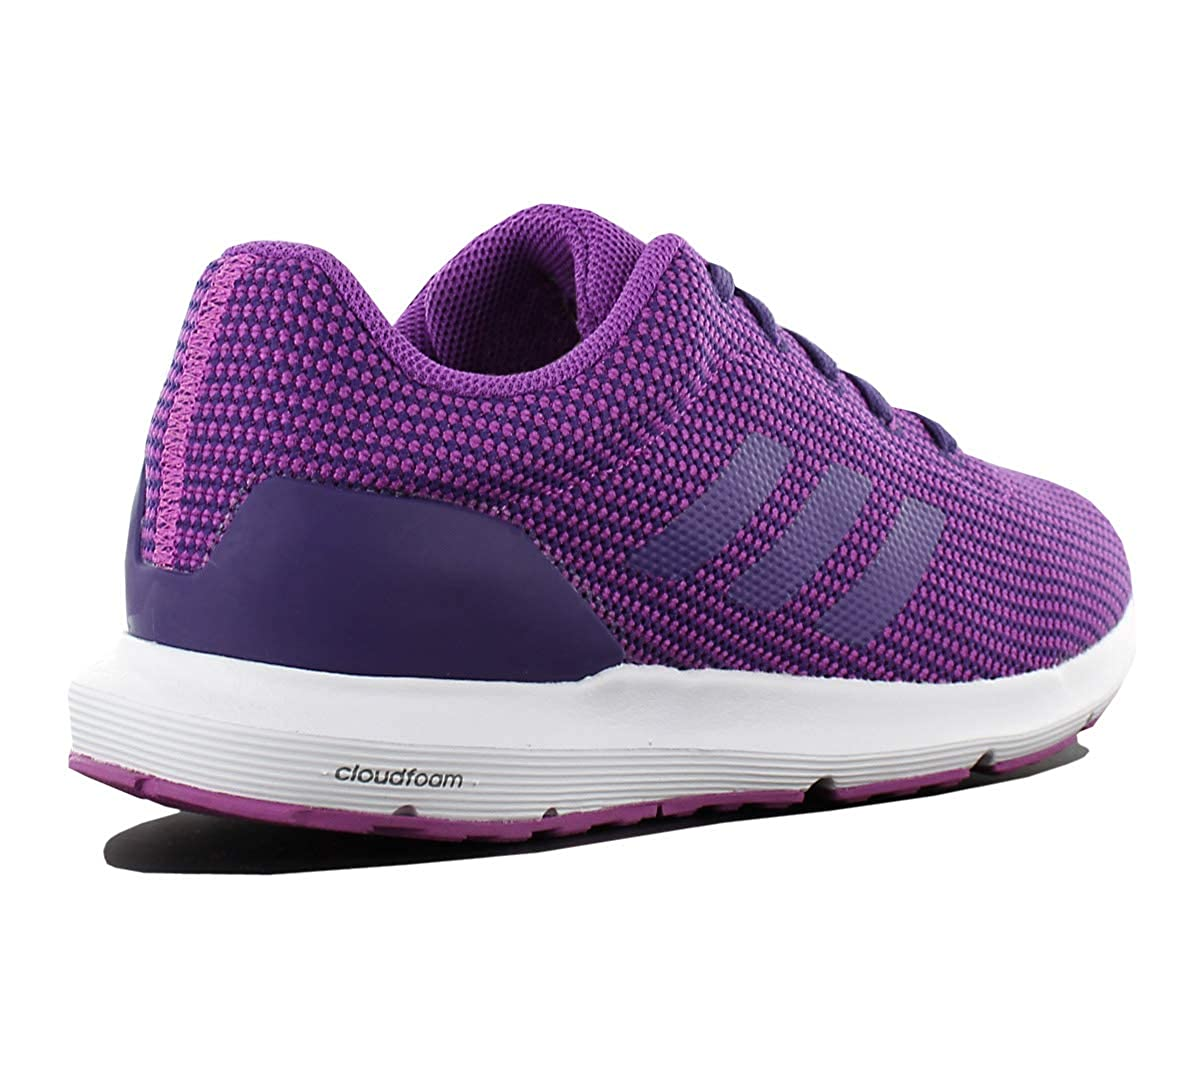 699e59dc92a0 adidas Cloudfoam Cosmic W Ladies Running-Shoes Violet Womens Trainers  Sneaker Shoes  Amazon.co.uk  Shoes   Bags